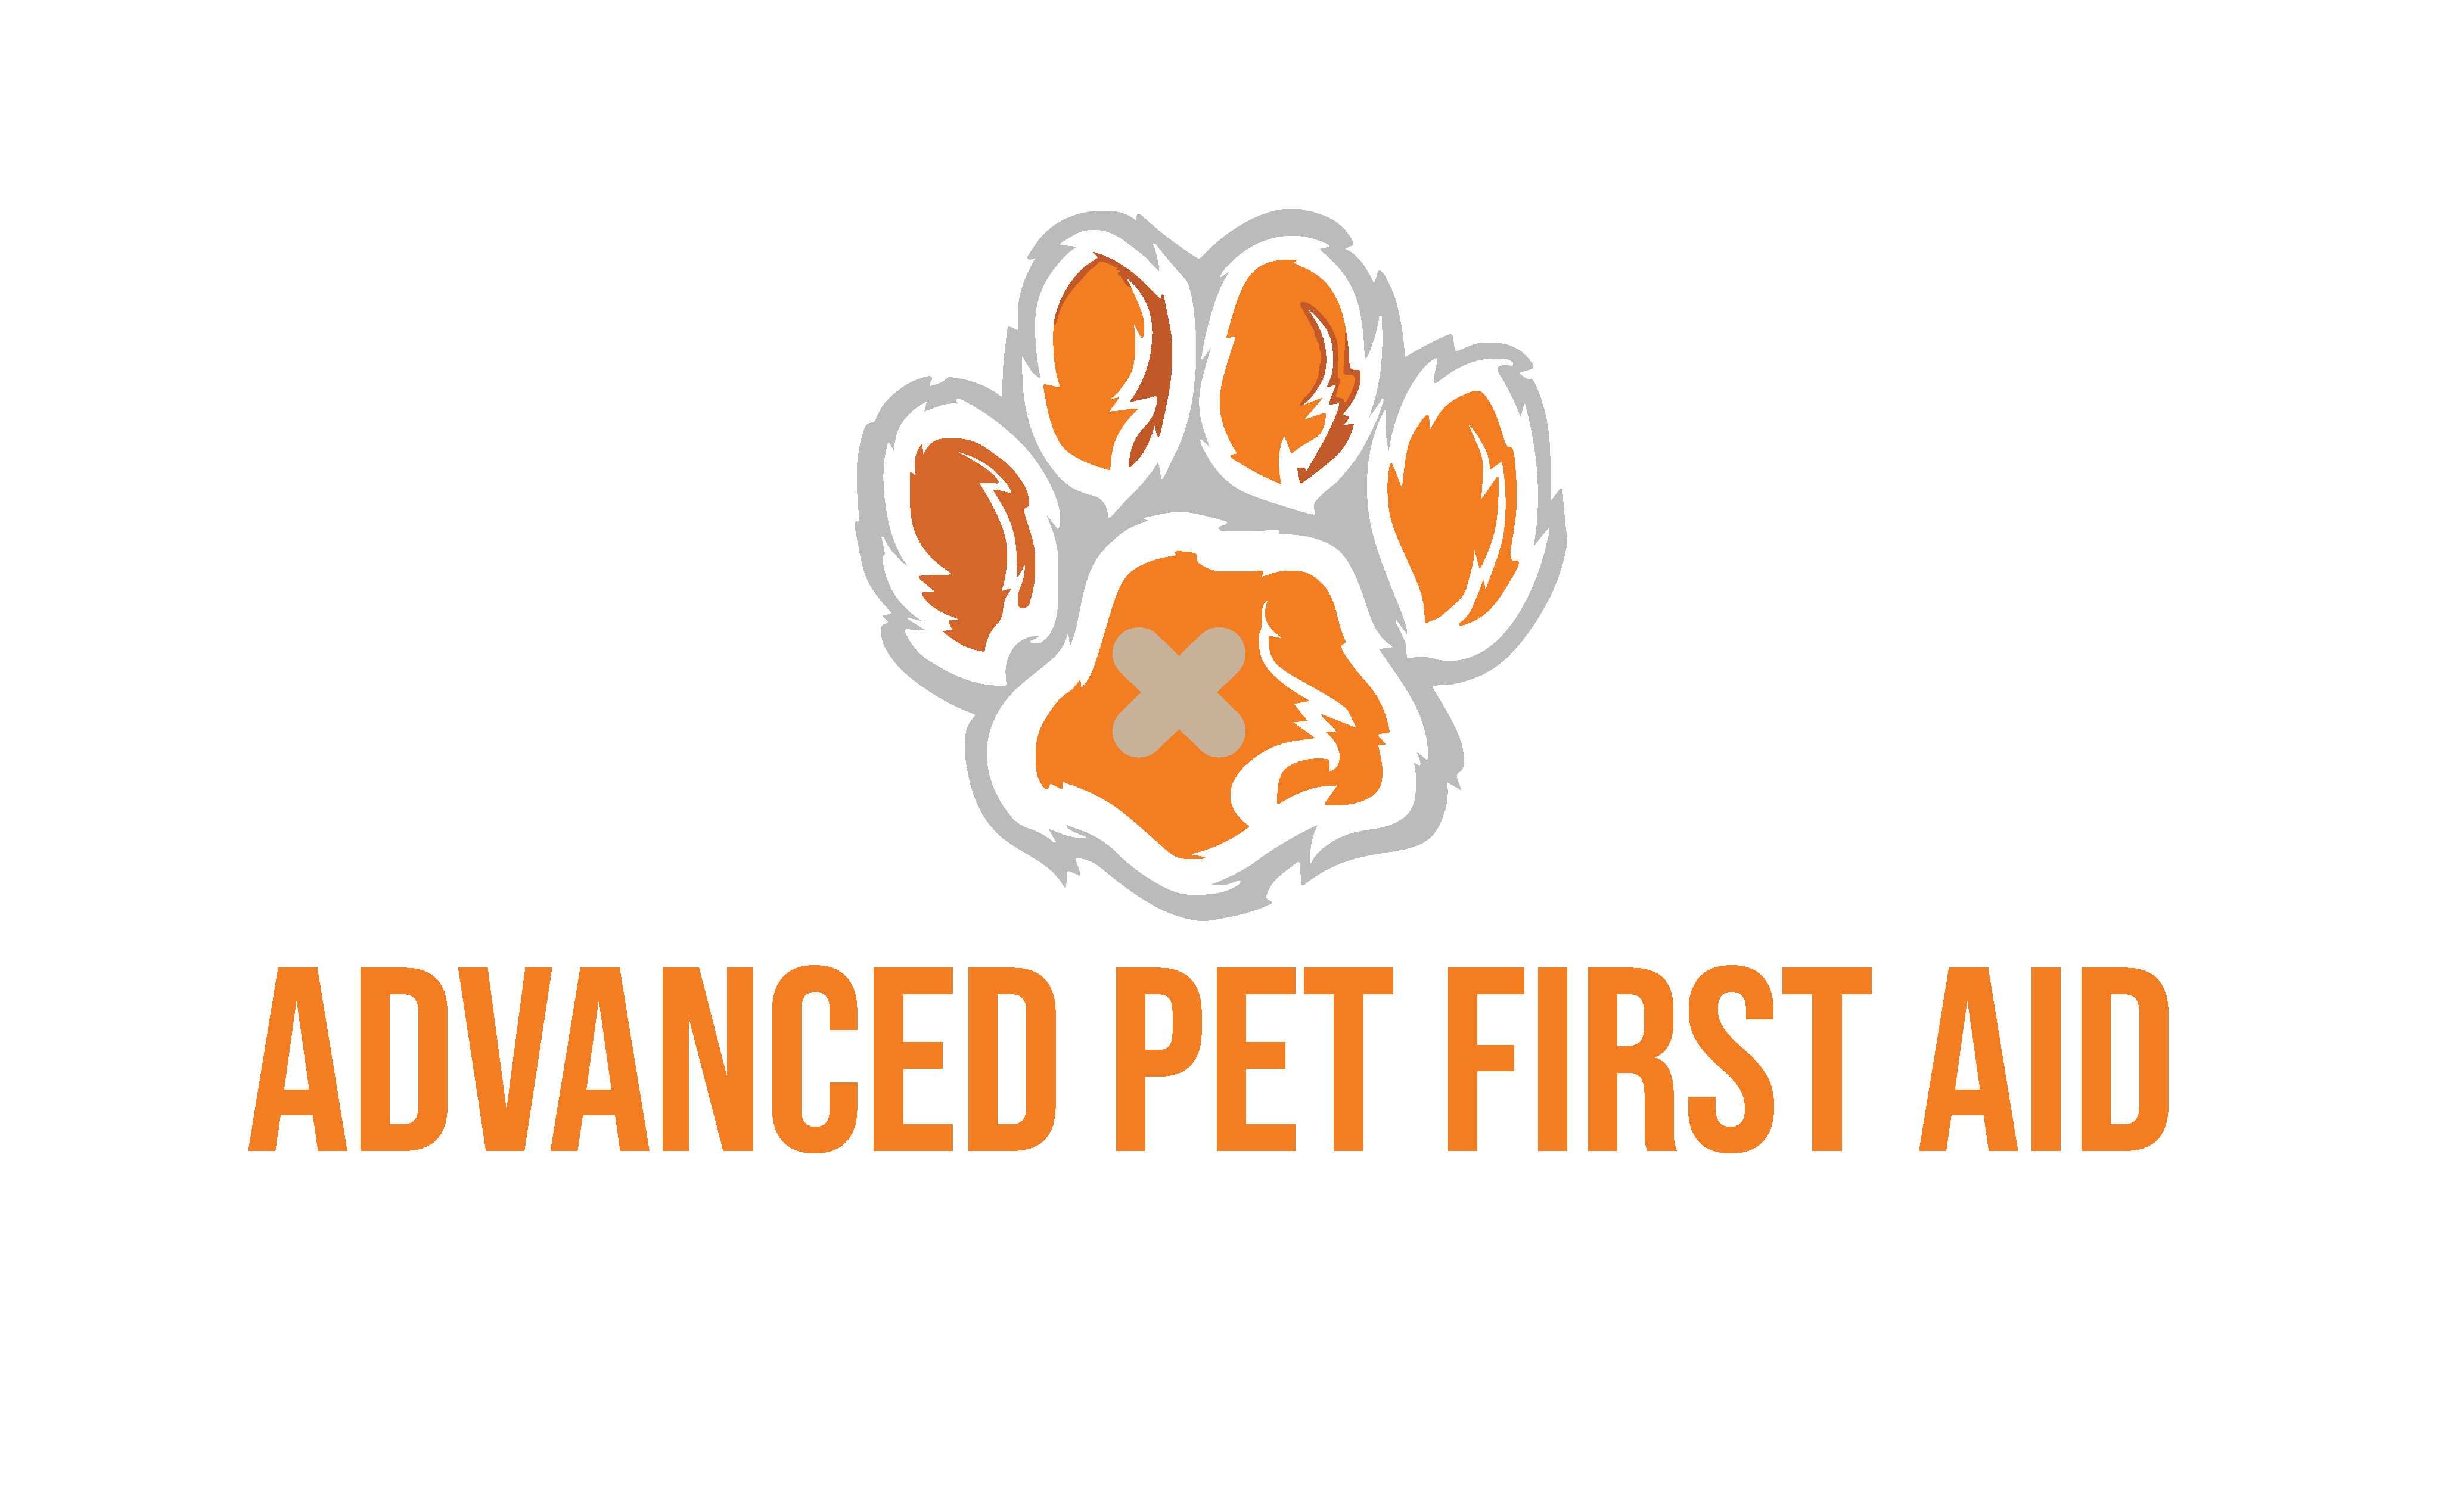 Advanced Pet First Aid, Advanced Pet First Aid